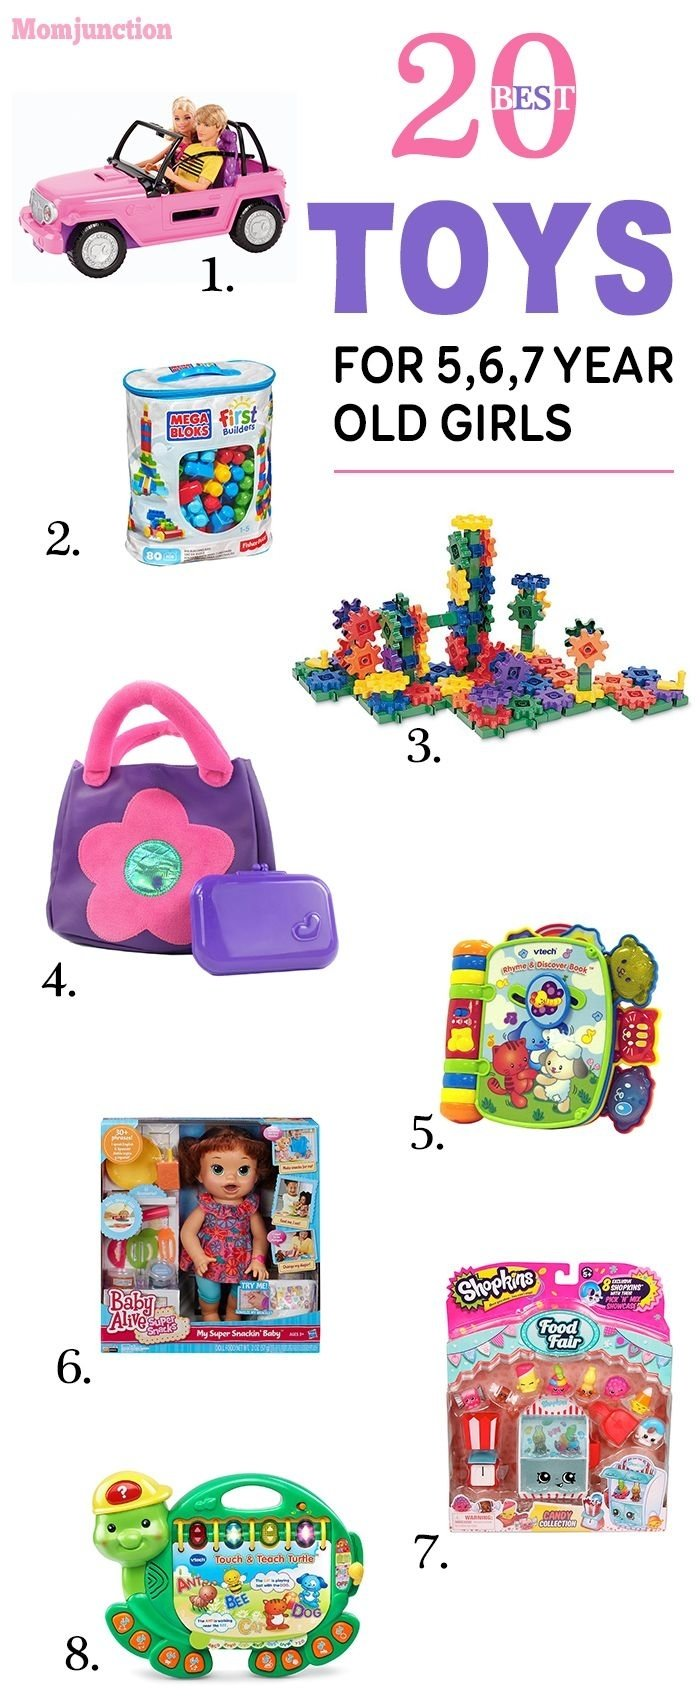 10 nice gift ideas for 5 year olds 15 best toys for 56 and 7 year - Best Christmas Gifts For 5 Yr Old Girl